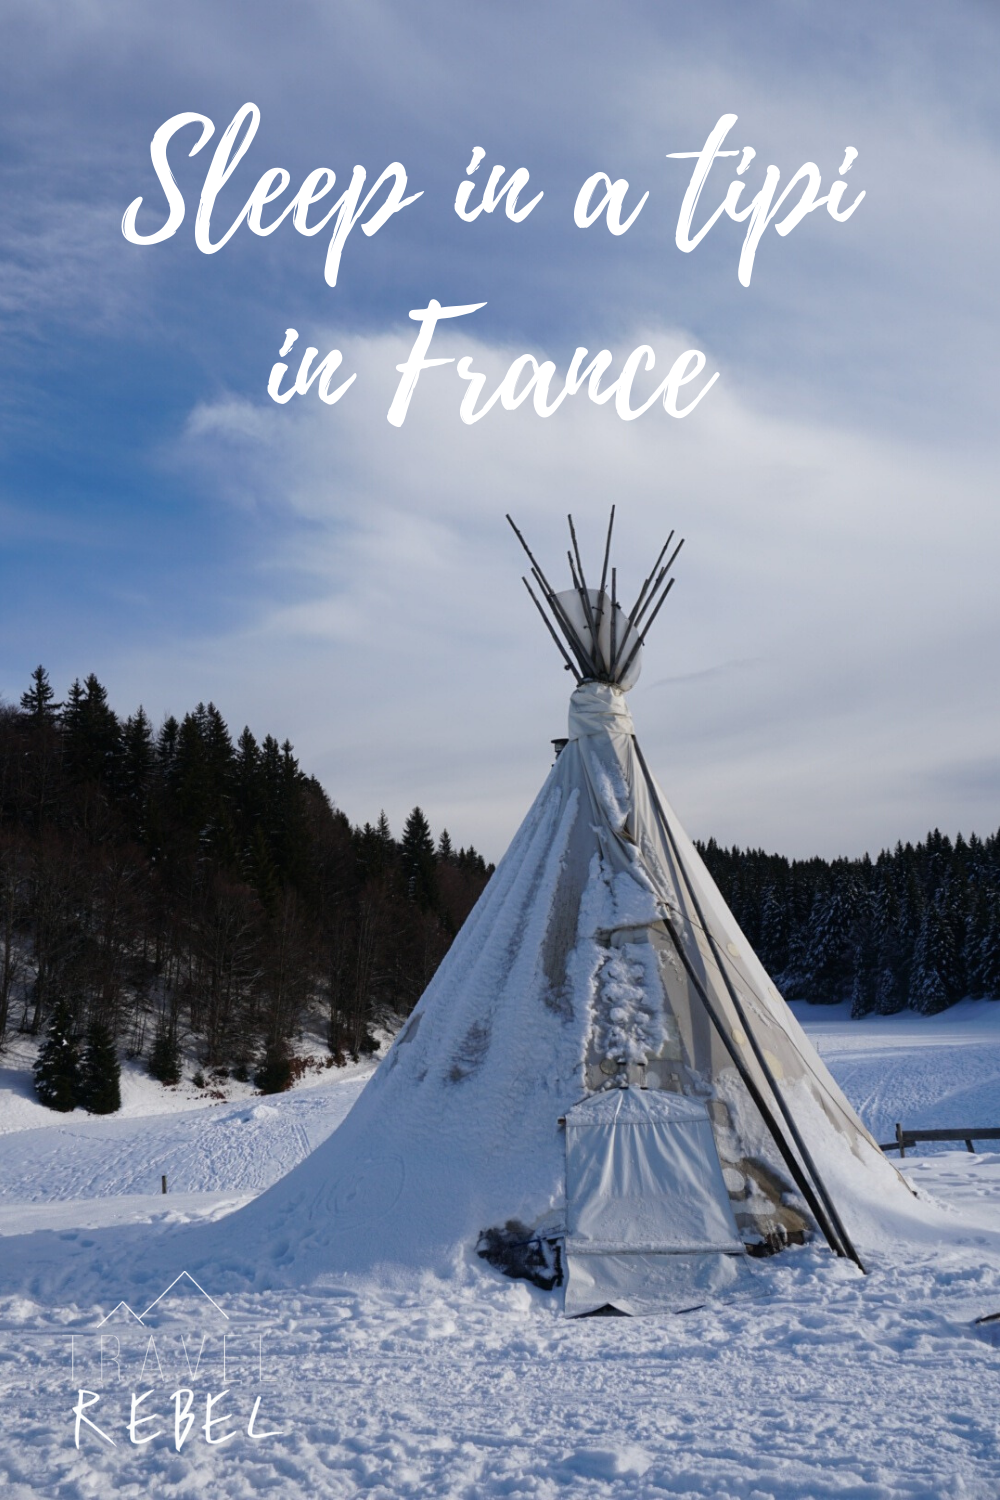 Sleep in a tipi in France